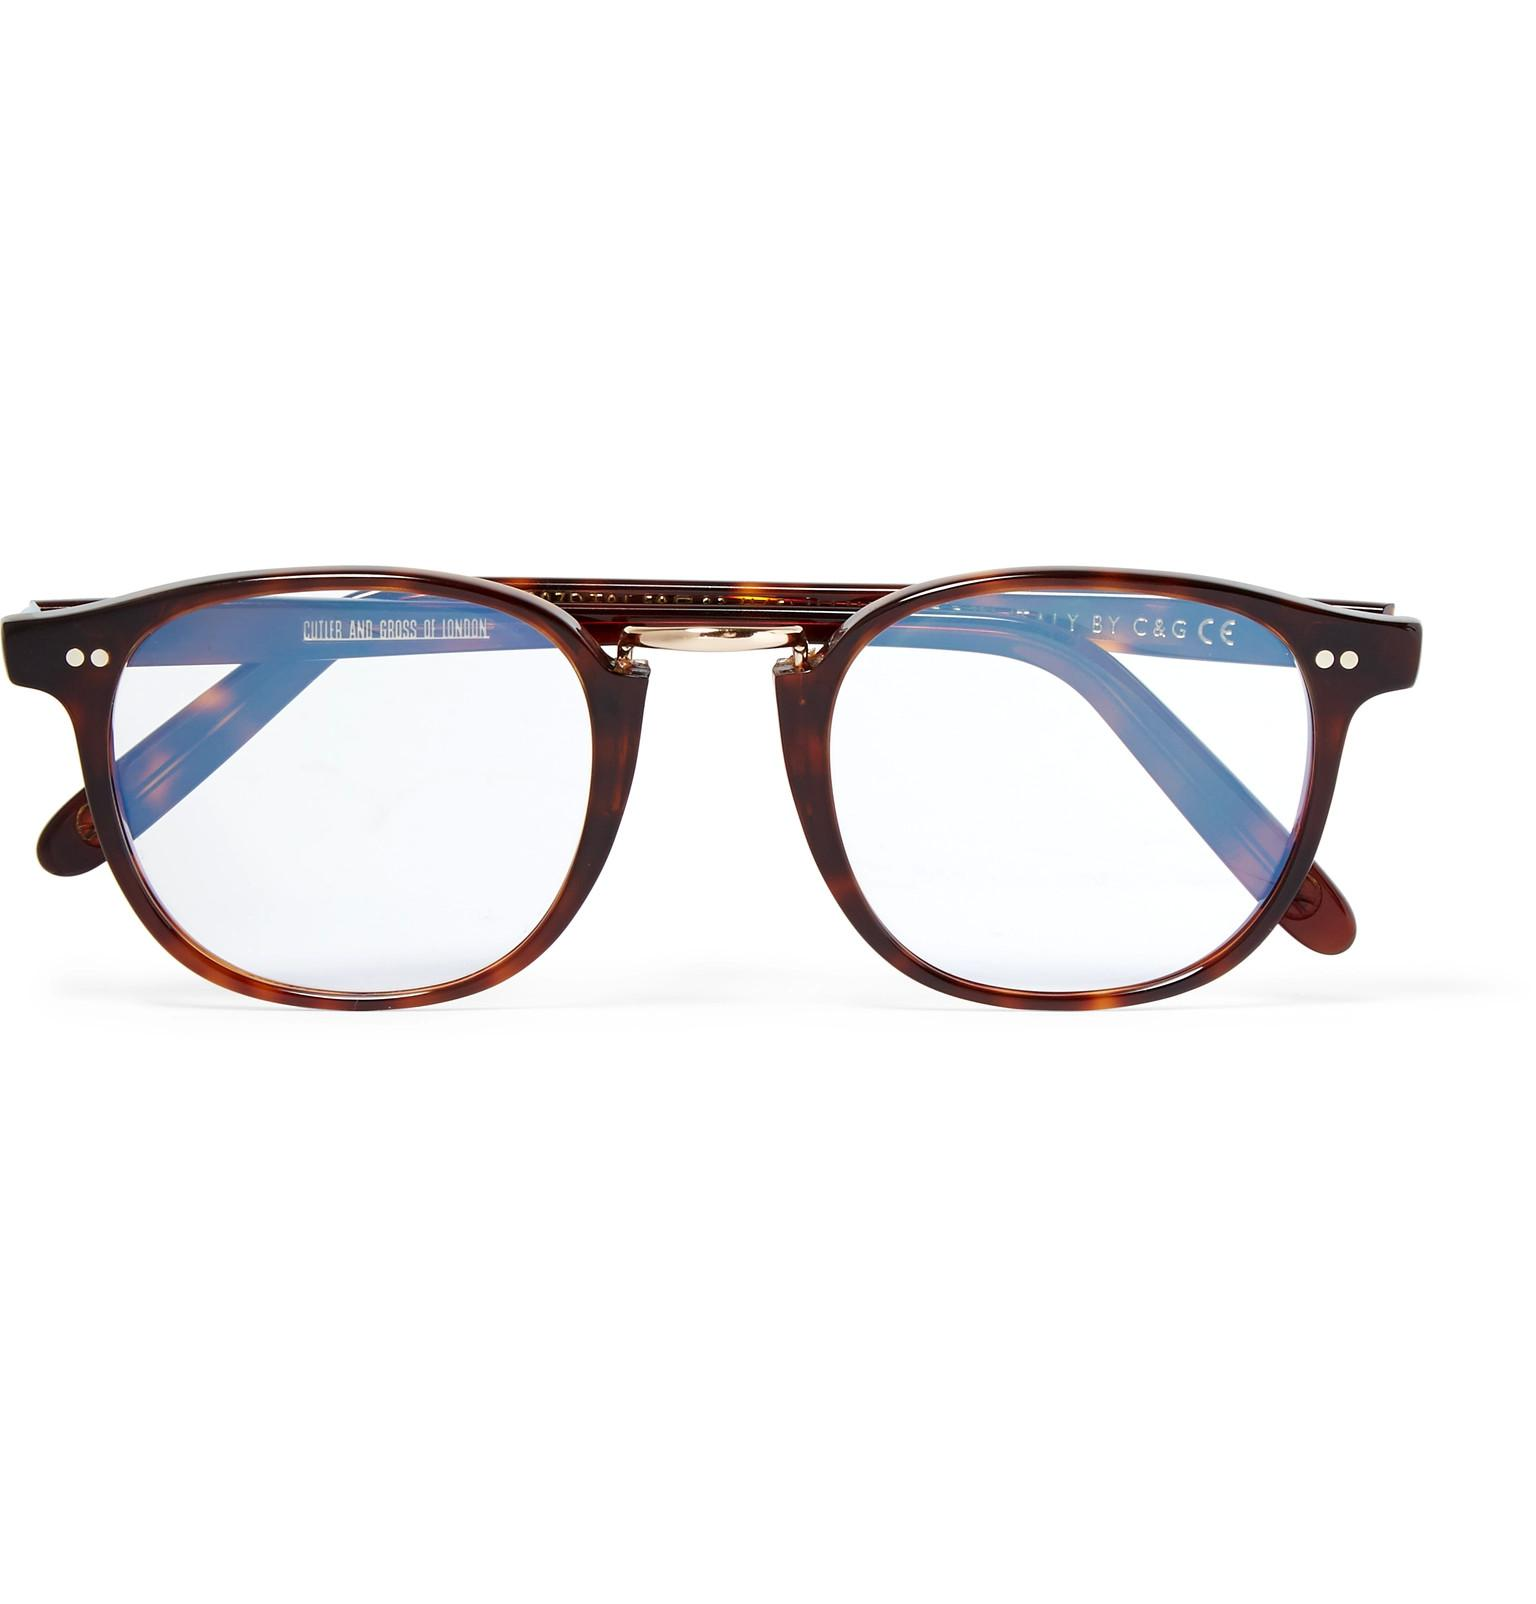 6e43c4fda45 Lyst - Kingsman Cutler And Gross D-frame Tortoiseshell Acetate And ...